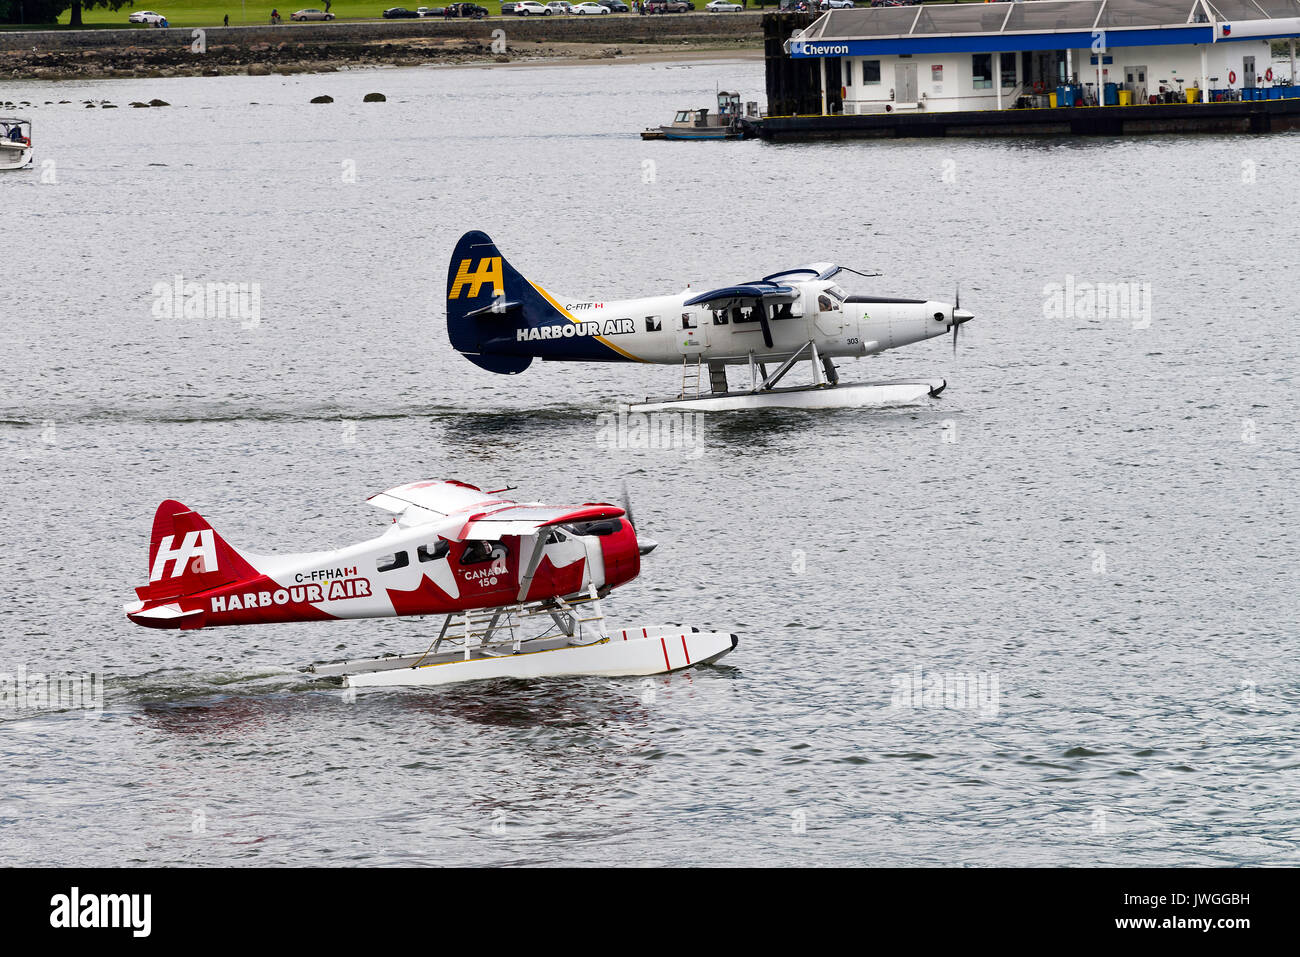 Harbour Air Passenger Seaplanes Taxiing on Water at Vancouver British Columbia Canada - Stock Image